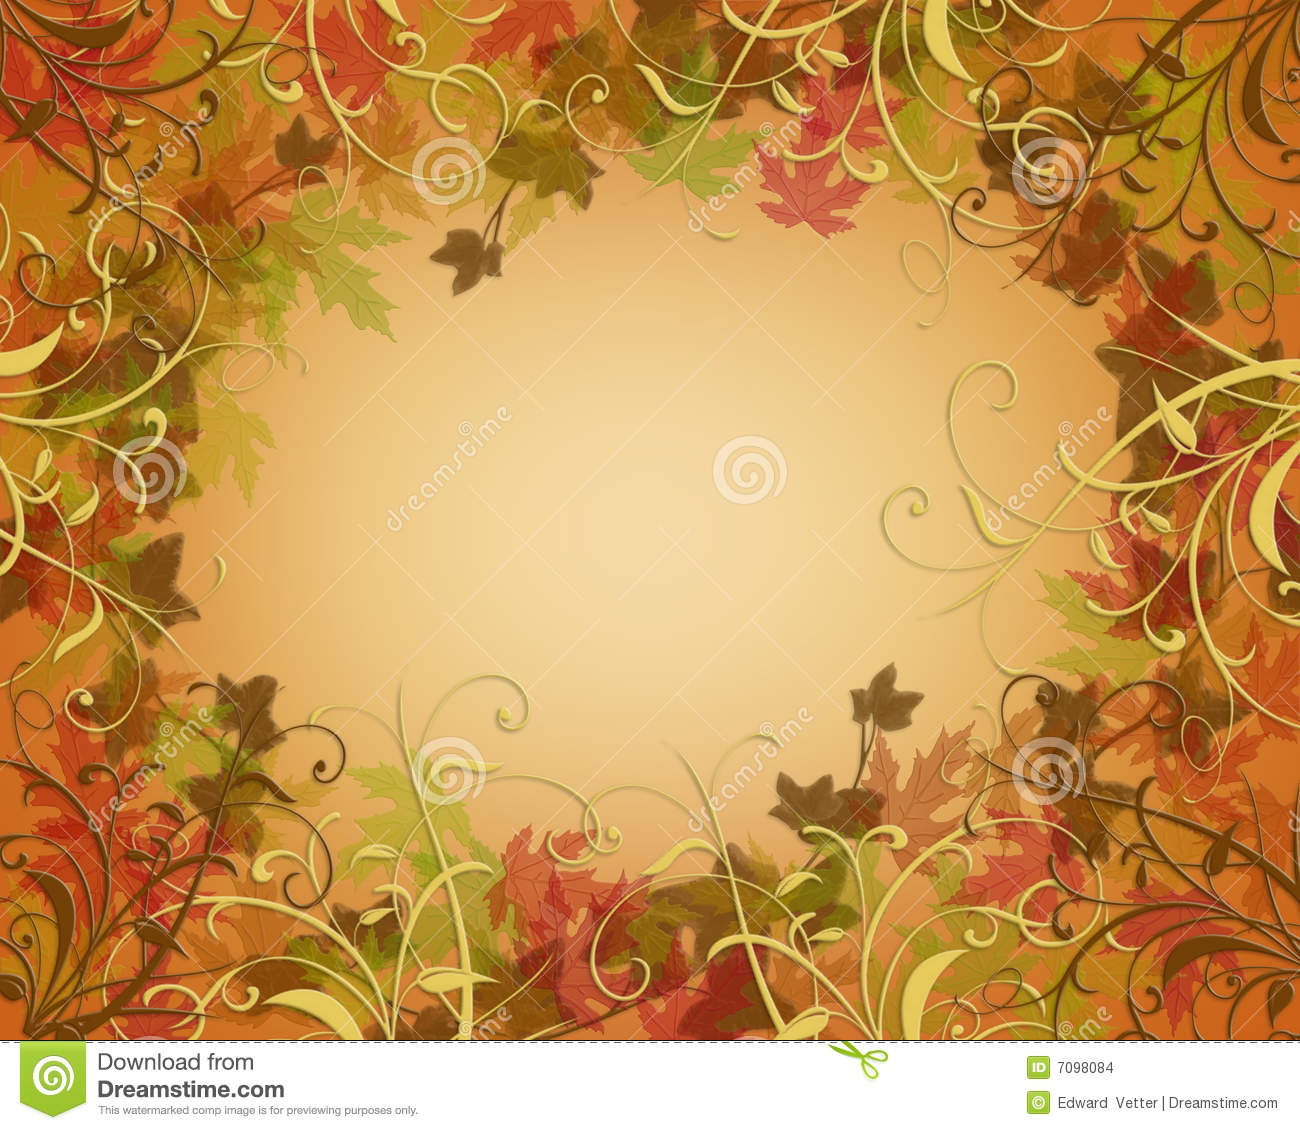 Illustration composition for Thanksgiving, autumn, fall, invitation ...